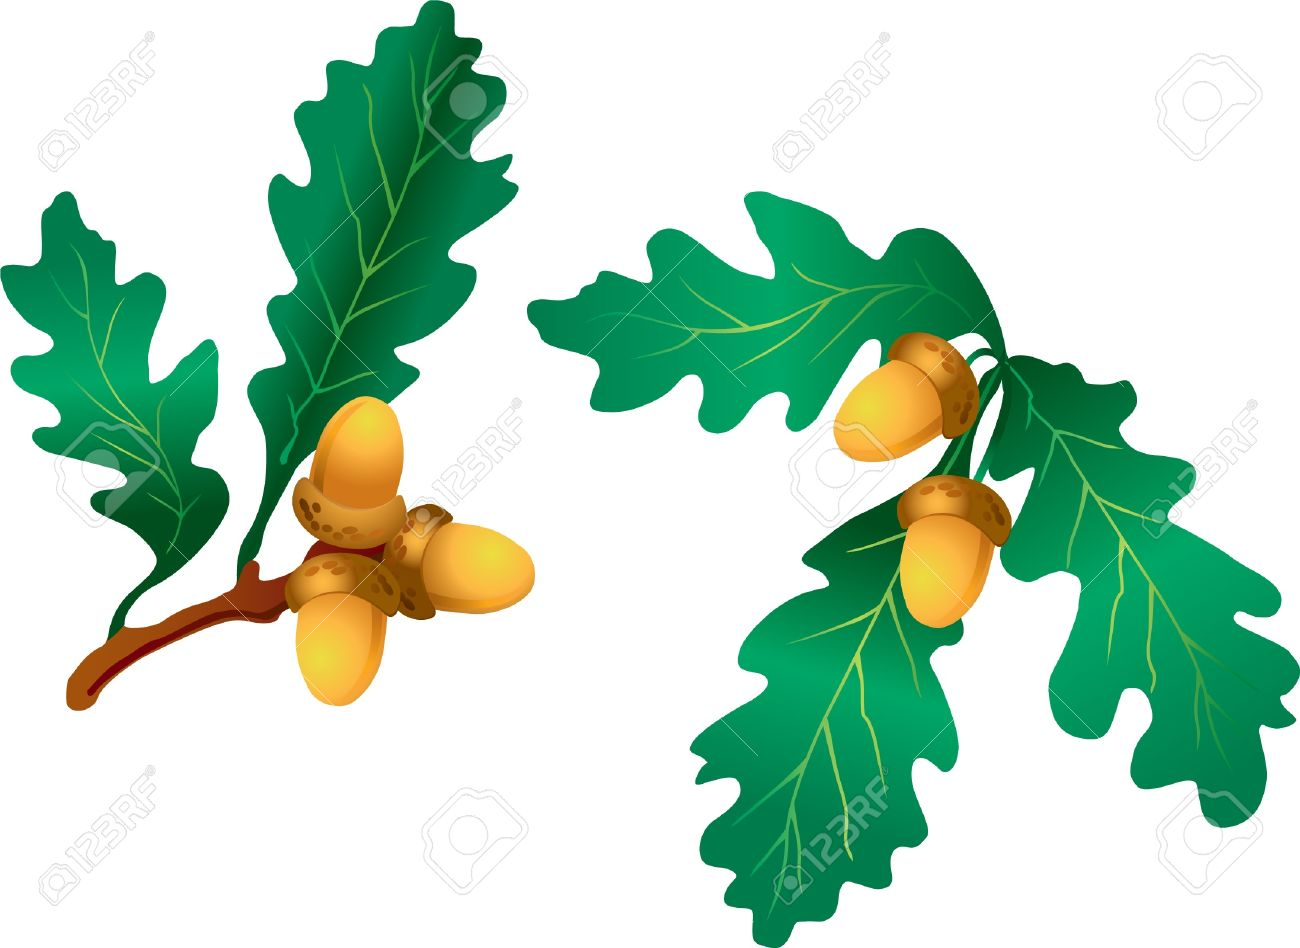 Branch with oak leaves and acorn Stock Vector - 13728377